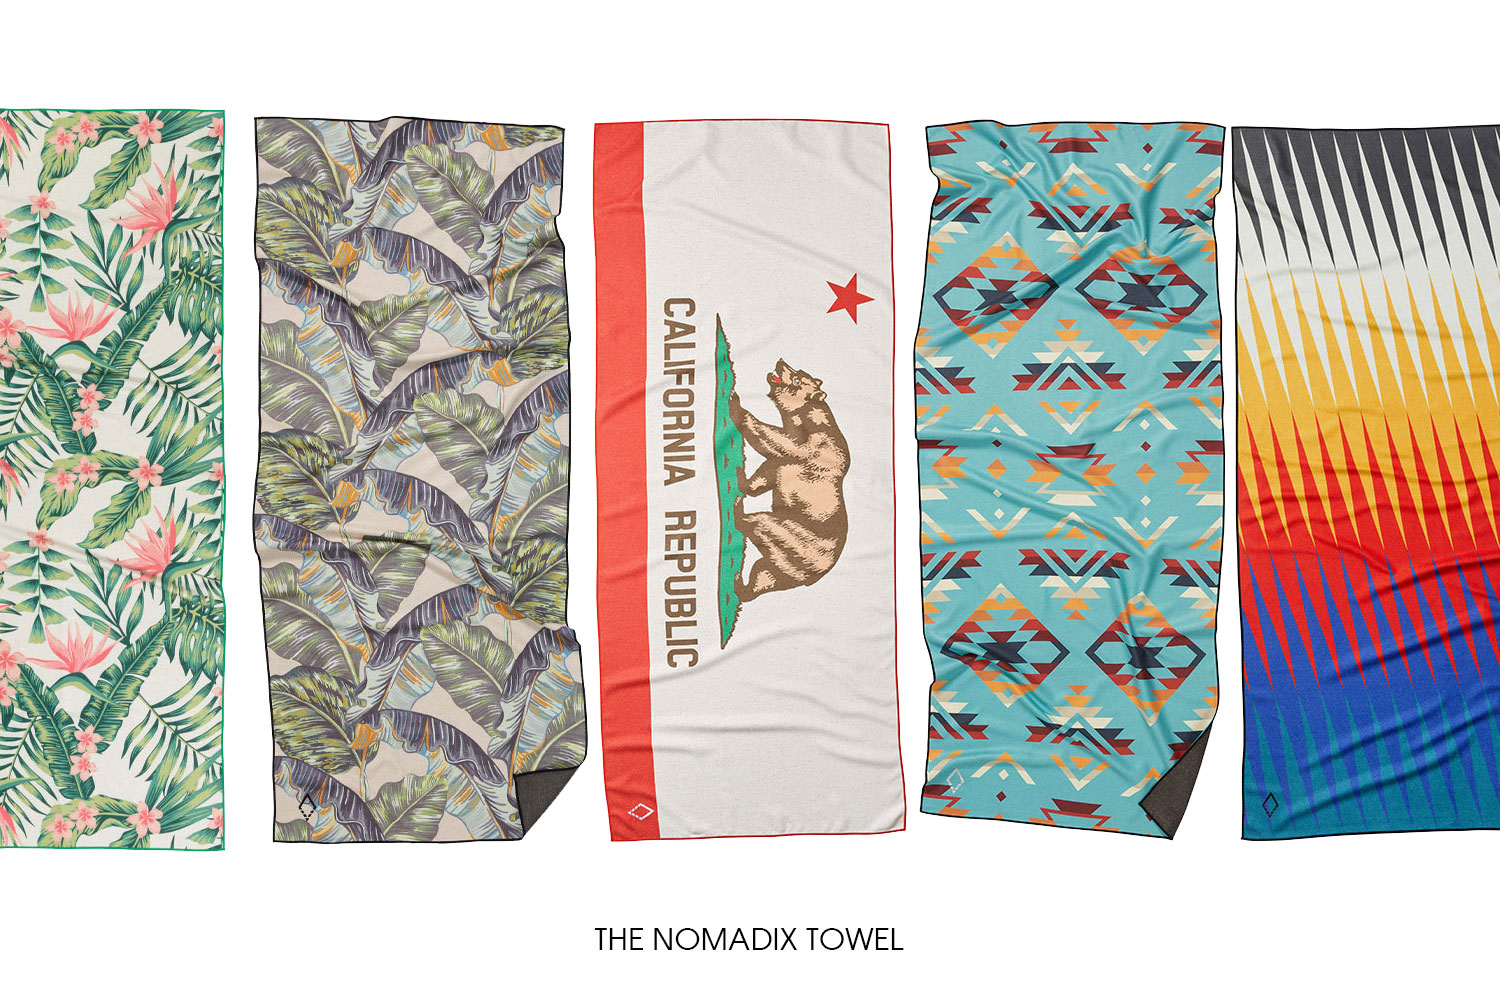 THE NOMADIX TOWEL